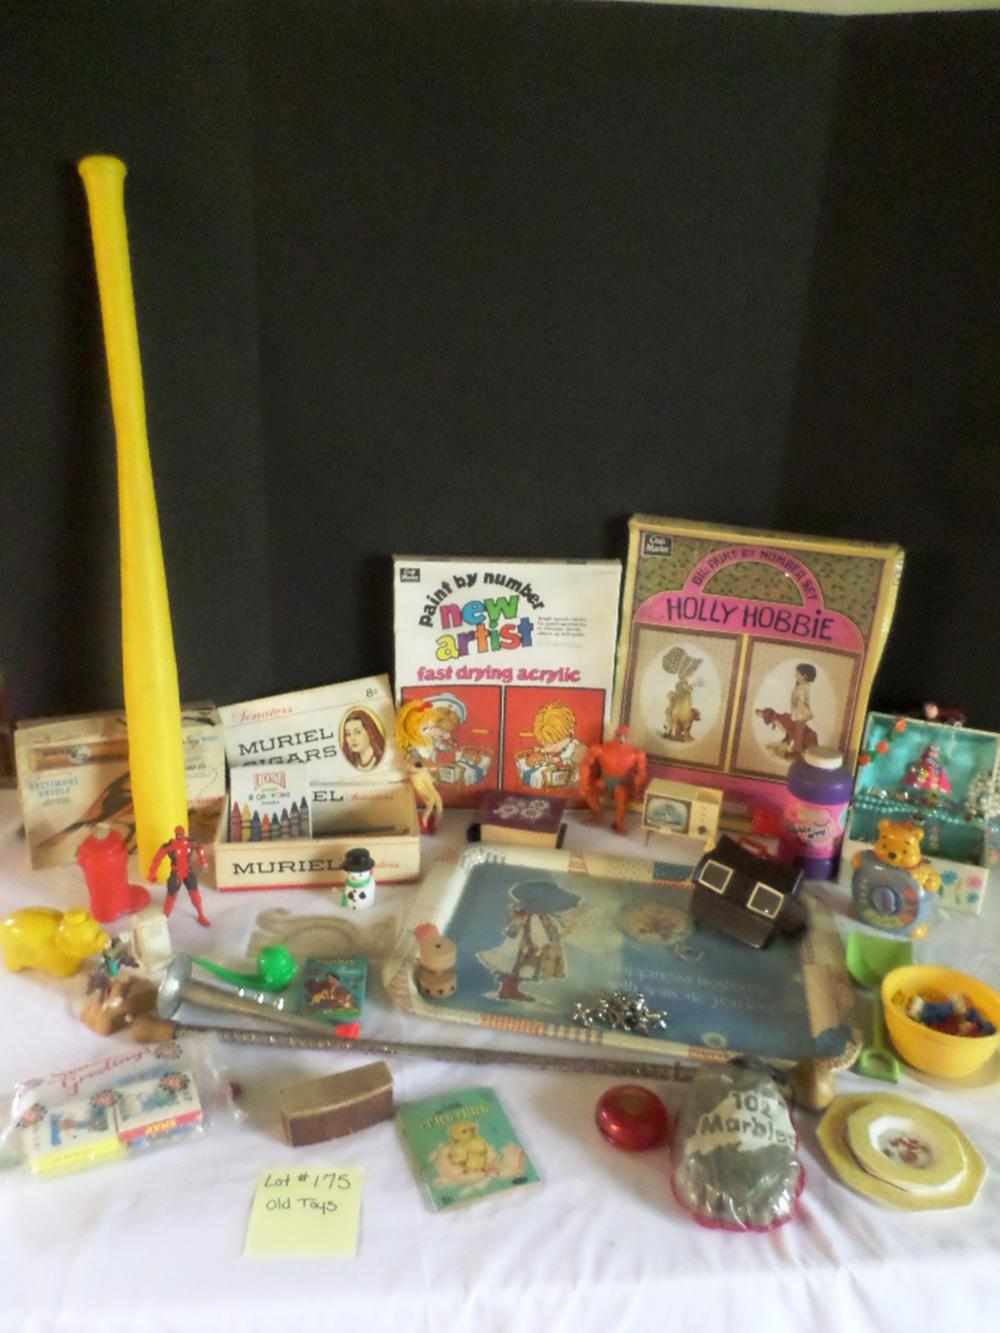 2 Unopened Paint-By-Number, Tray, Jewelry Box /w Costume Jewelry, Old Toys, Marbles